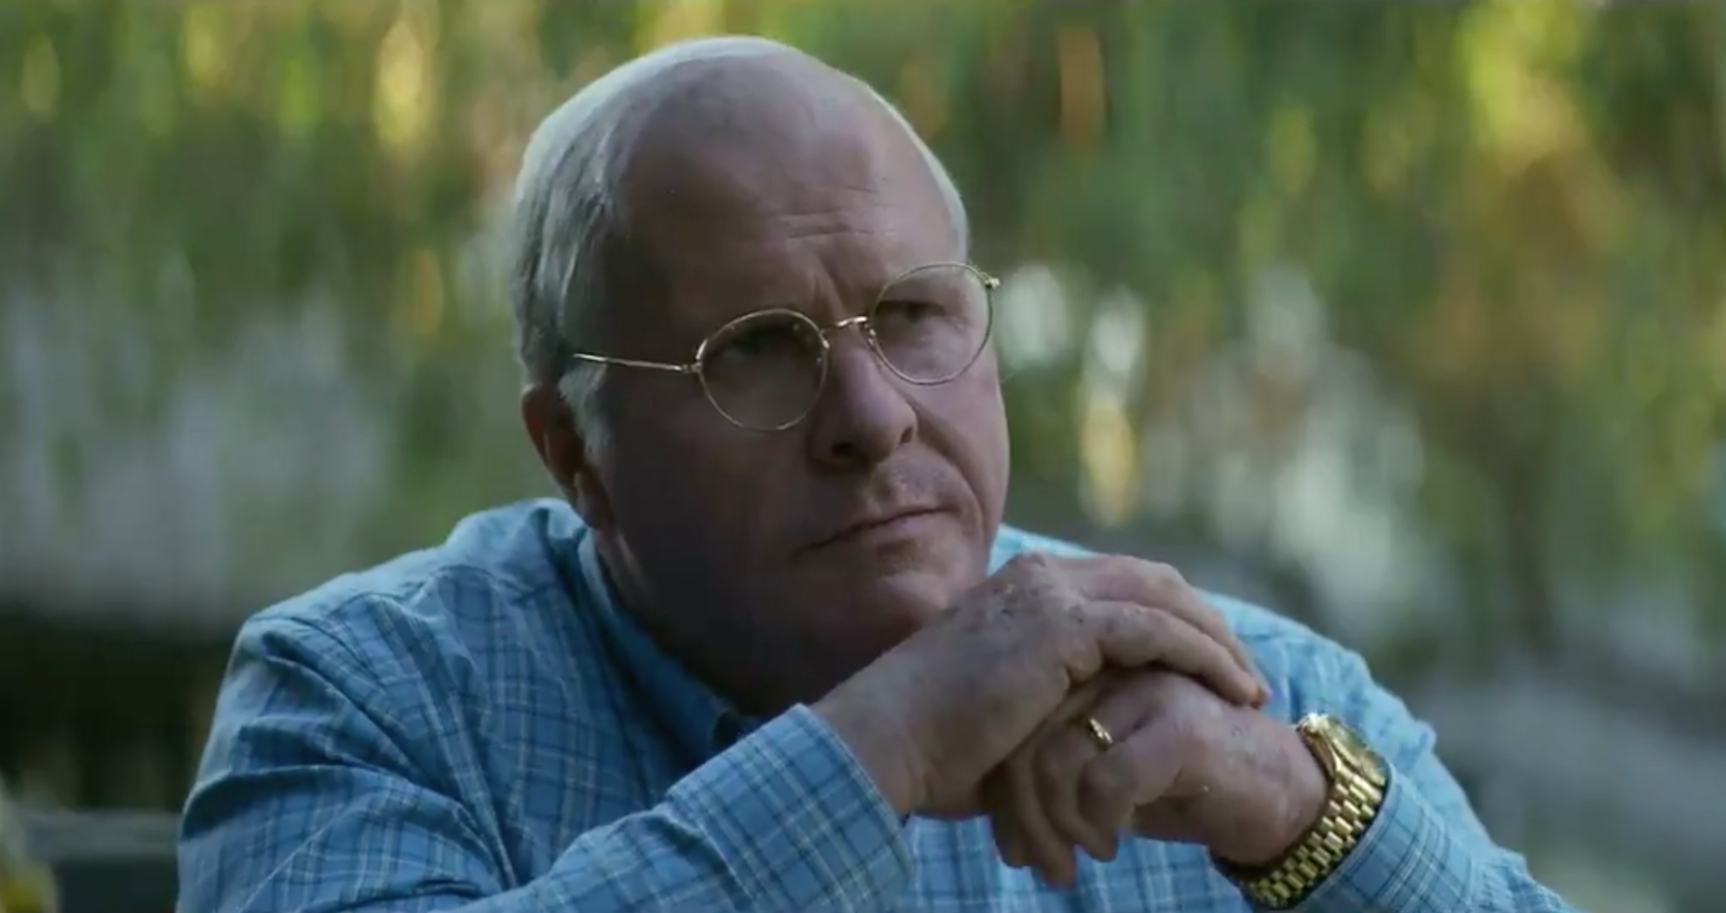 'Vice' Trailer: Christian Bale and Amy Adams Take on the Cheney Legacy in Adam McKay's 'Big Short' Follow-Up